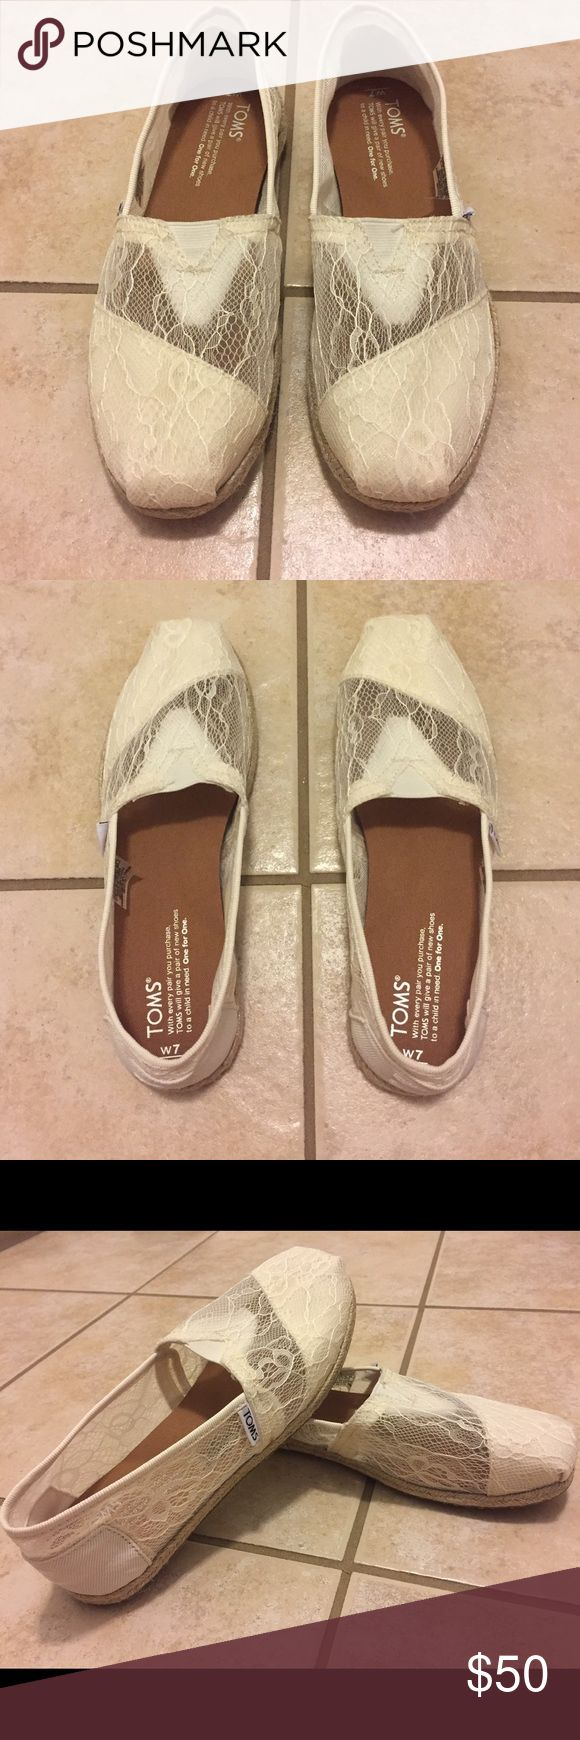 White Lace Toms NWOT White Lace Toms. Never worn except to try them on. TOMS Shoes Flats & Loafers